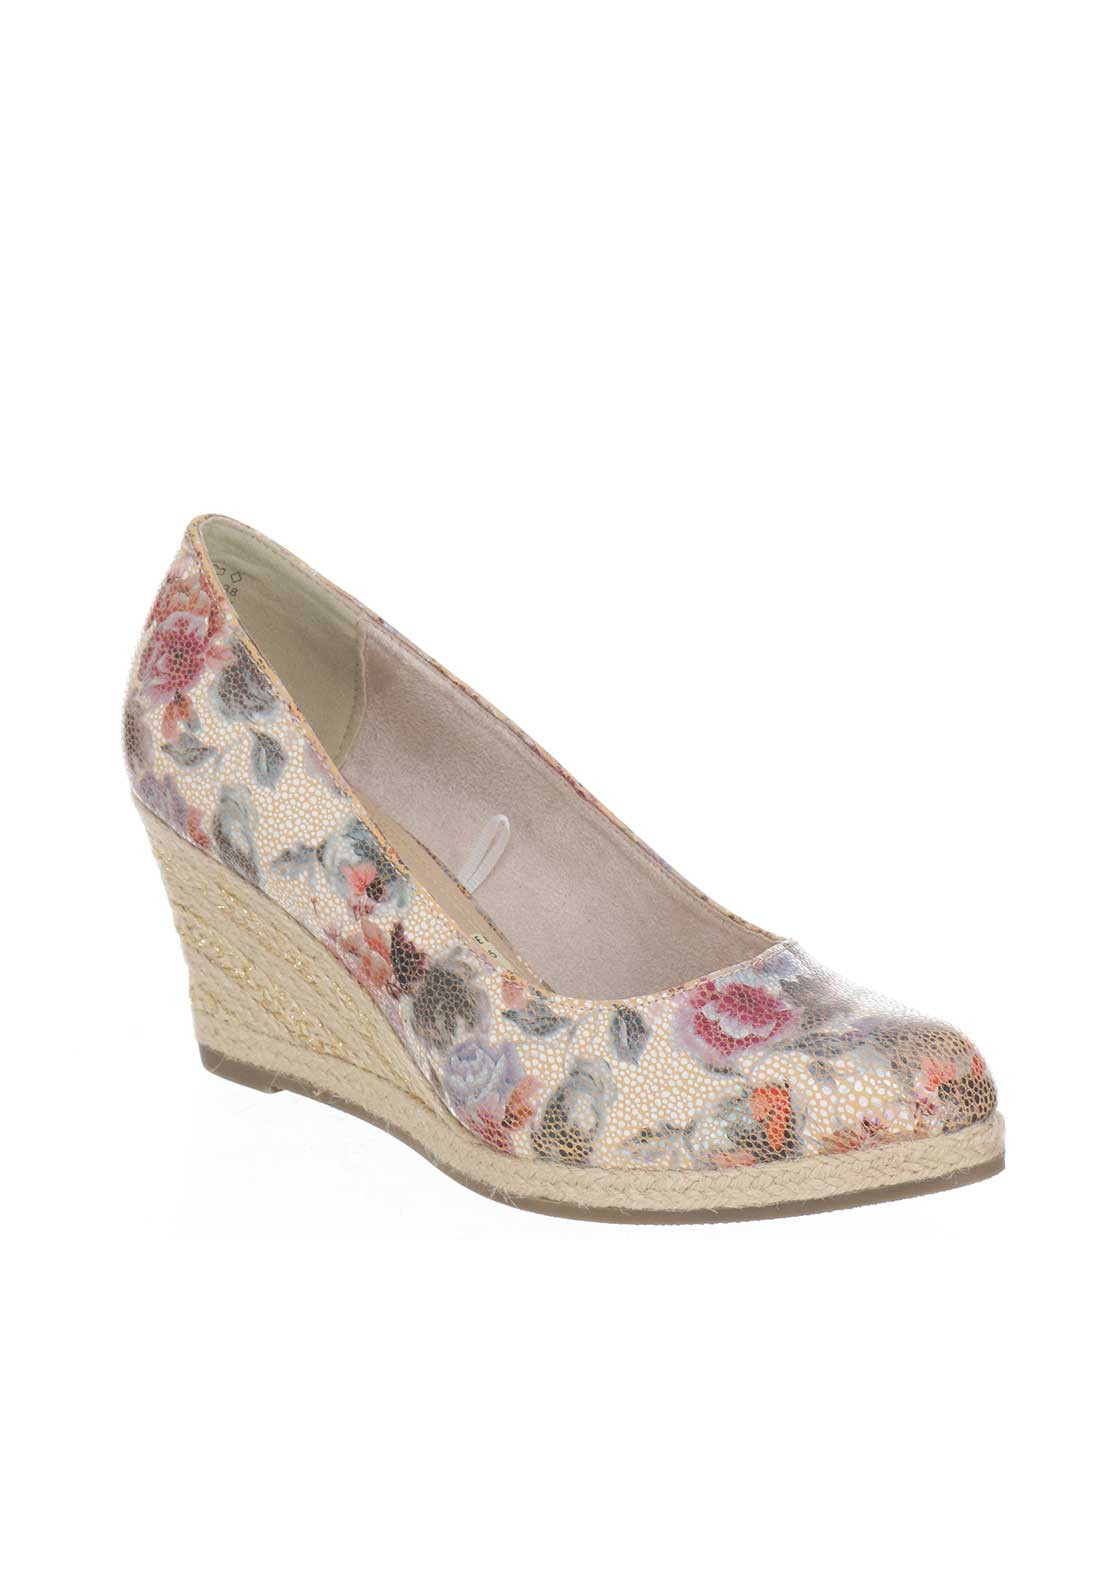 Marco Tozzi Floral Espadrille Wedged Shoes, Multi-Coloured